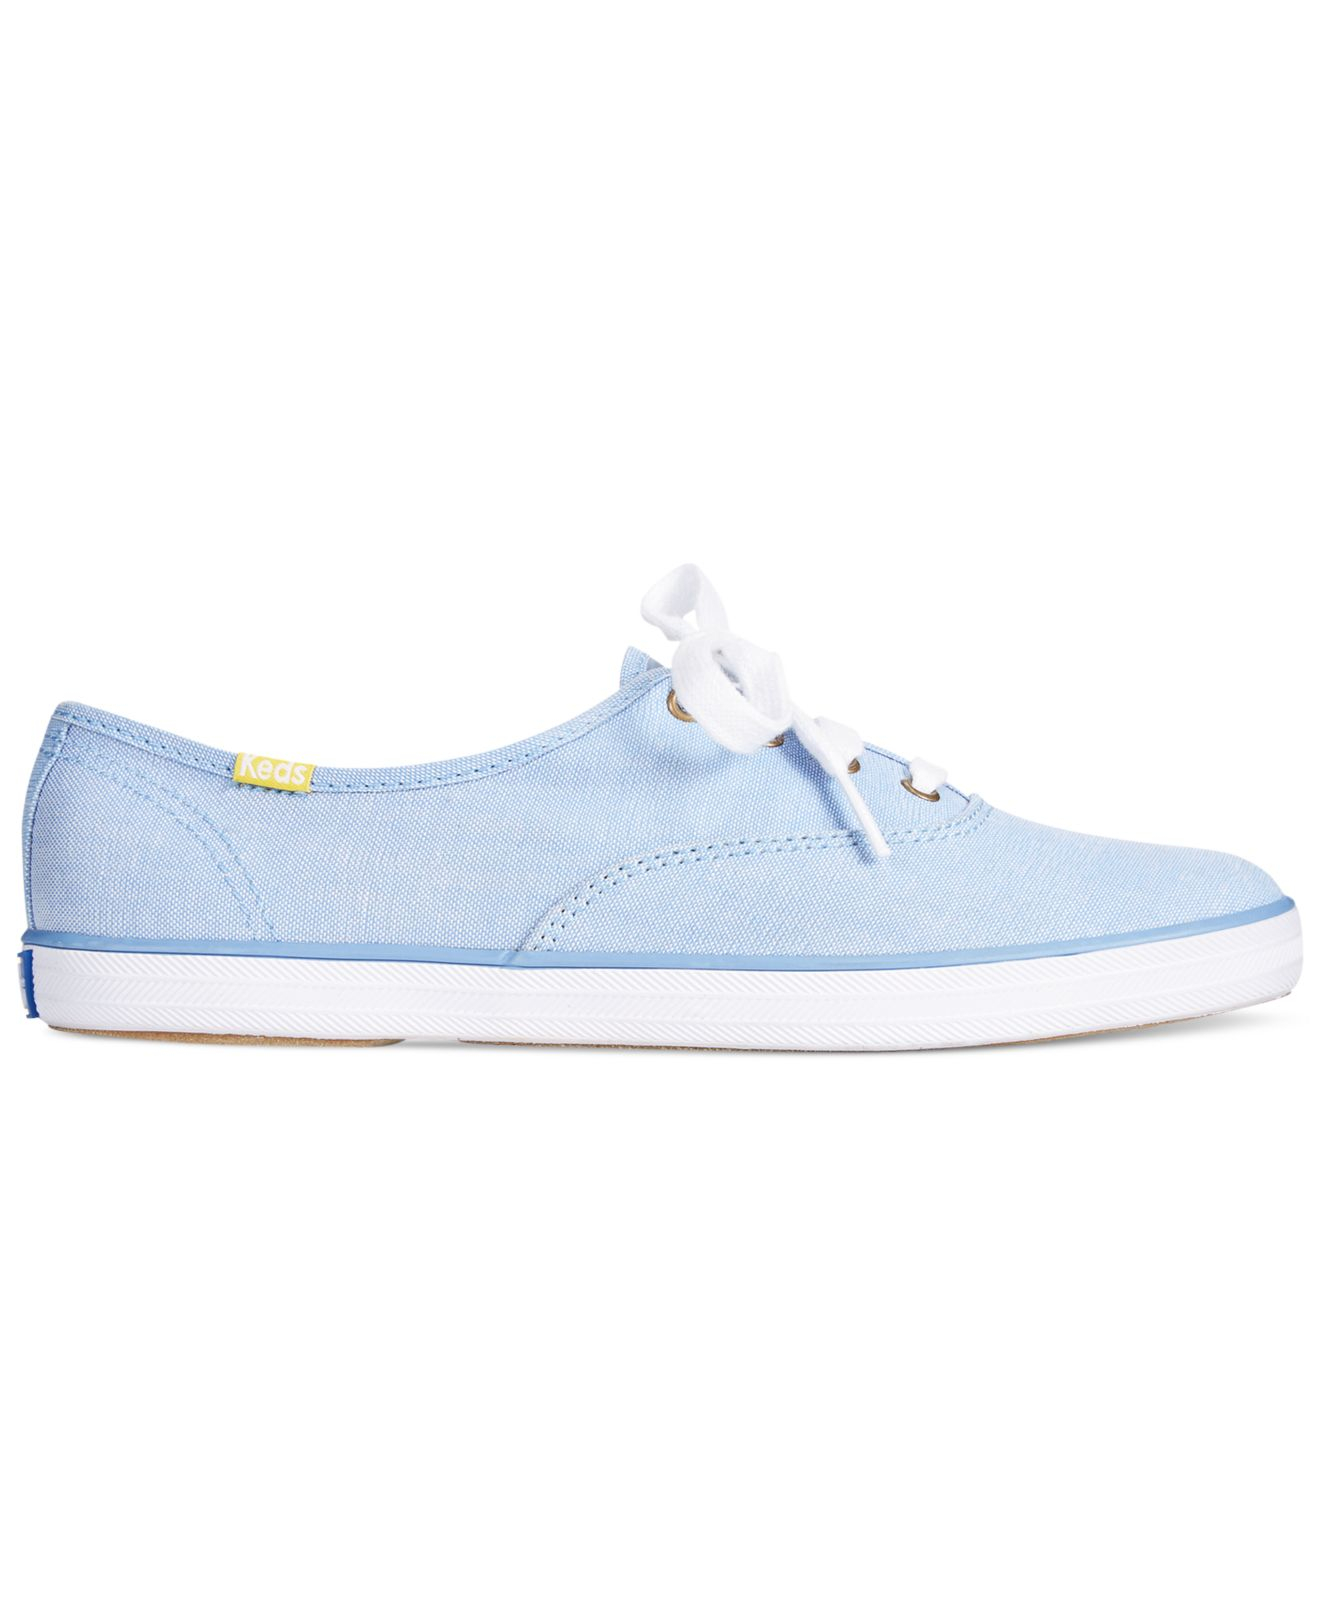 Lyst - Keds Women's Spring Champion Oxford Sneakers in Blue